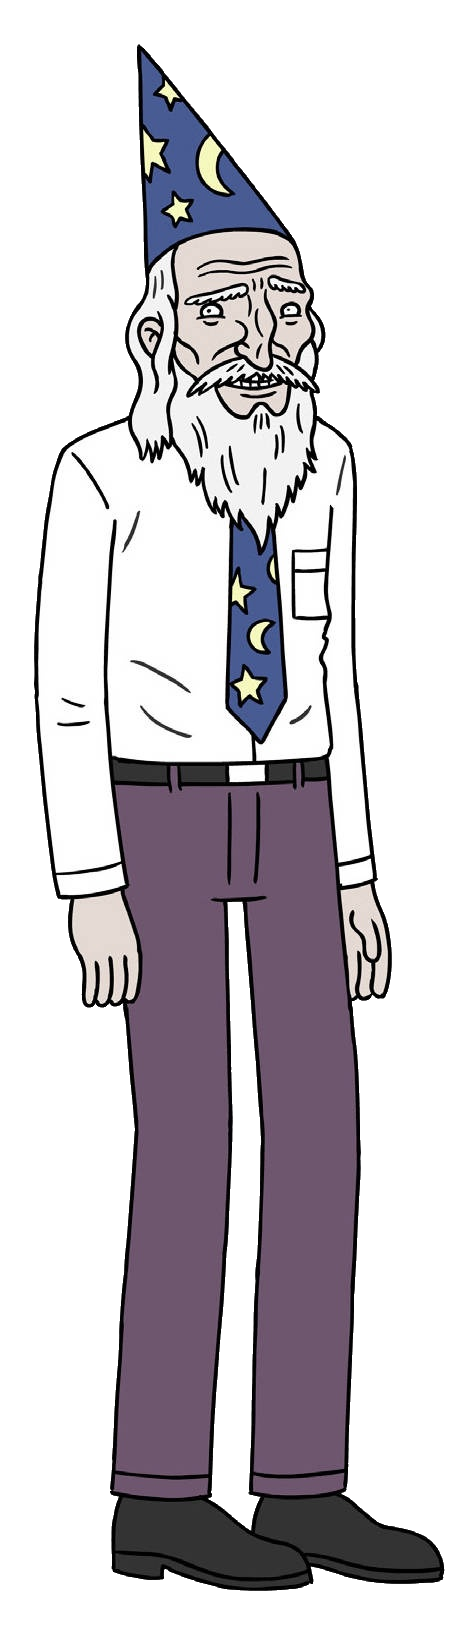 Wizard ugly americans wiki. Magician clipart magic man